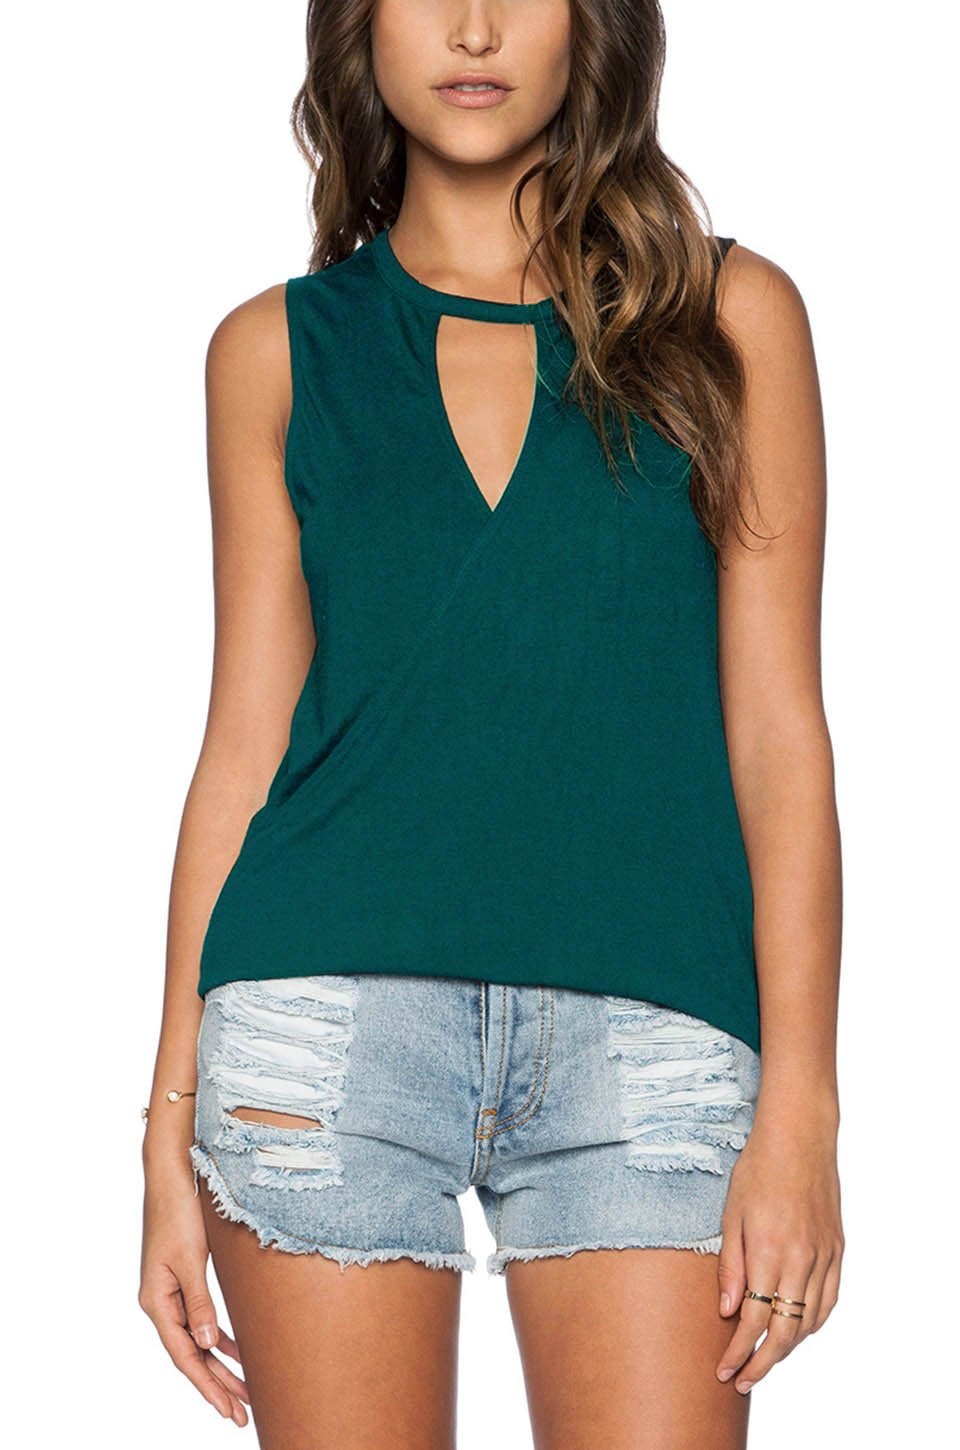 Fihapyli Women's V-Neck Front wrap Sleeveless Top T-Shirts Sexy Yoga Tops Workout Clothes Top for Sport Backless Summer Tee Knit Stretchy Tank Loose Tops (DarkGreen, M)